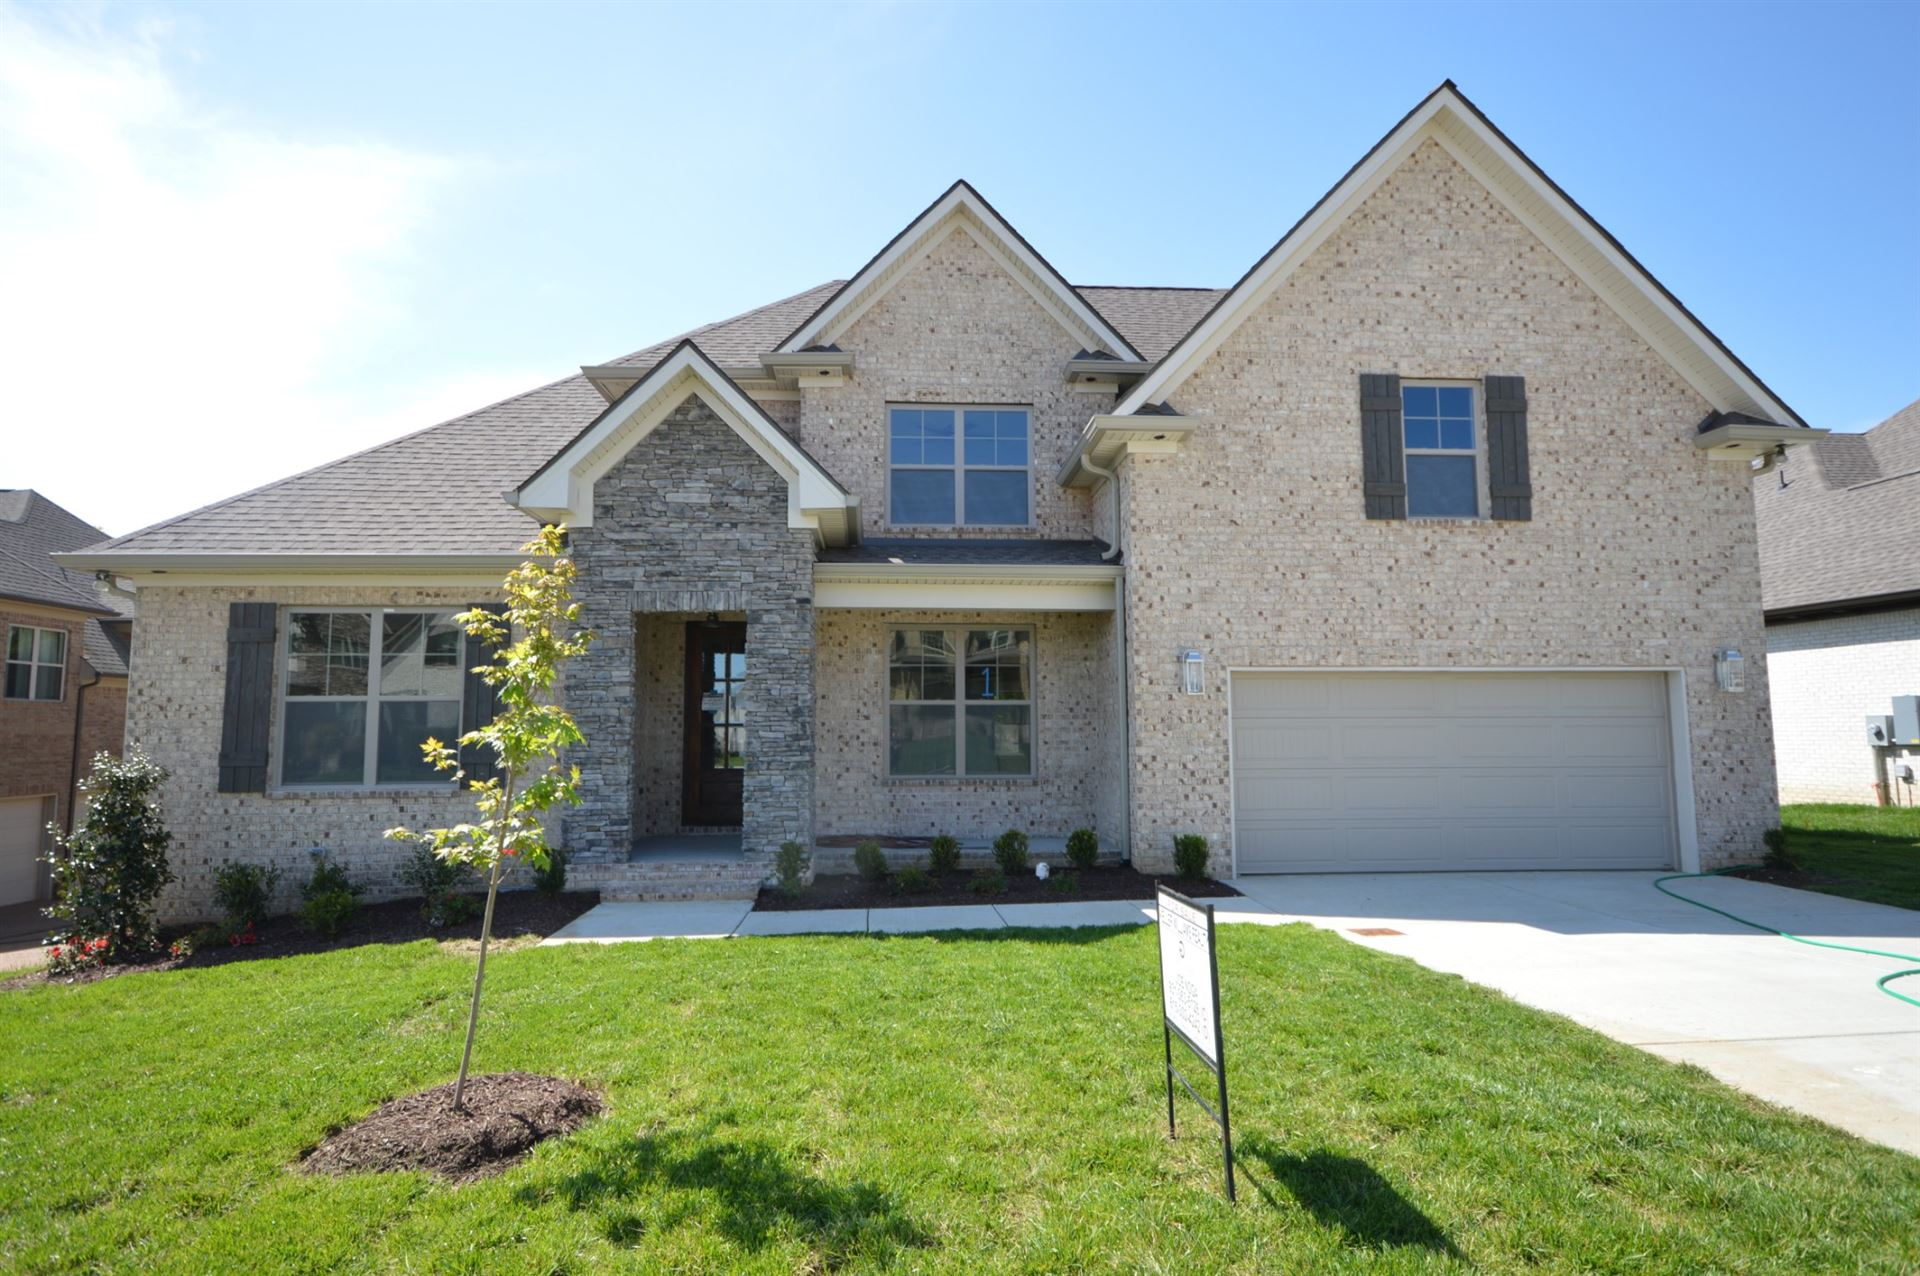 Photo of 4071 Miles Johnson Pkwy (1), Spring Hill, TN 37174 (MLS # 2114434)